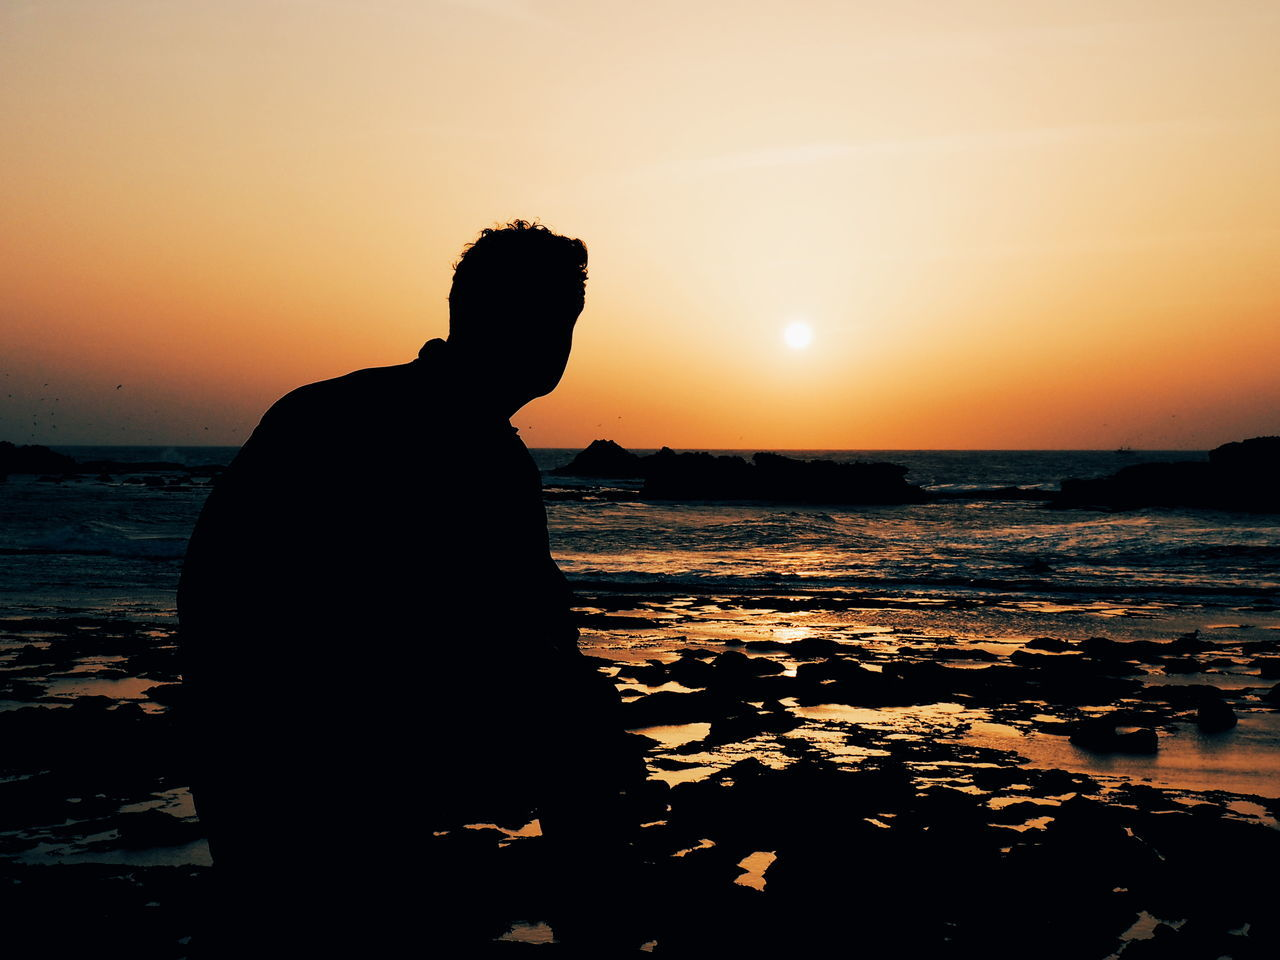 Sunset Silhouette One Man Only One Person People Night Sea Winter Beach Outdoors Sky Men Nature Portrait Water Horizon Over Water Morocco 🇲🇦 Orange Sky Dramatic Sky No People Morocco Sunset_collection Vacations Beauty In Nature Silhouette Neighborhood Map